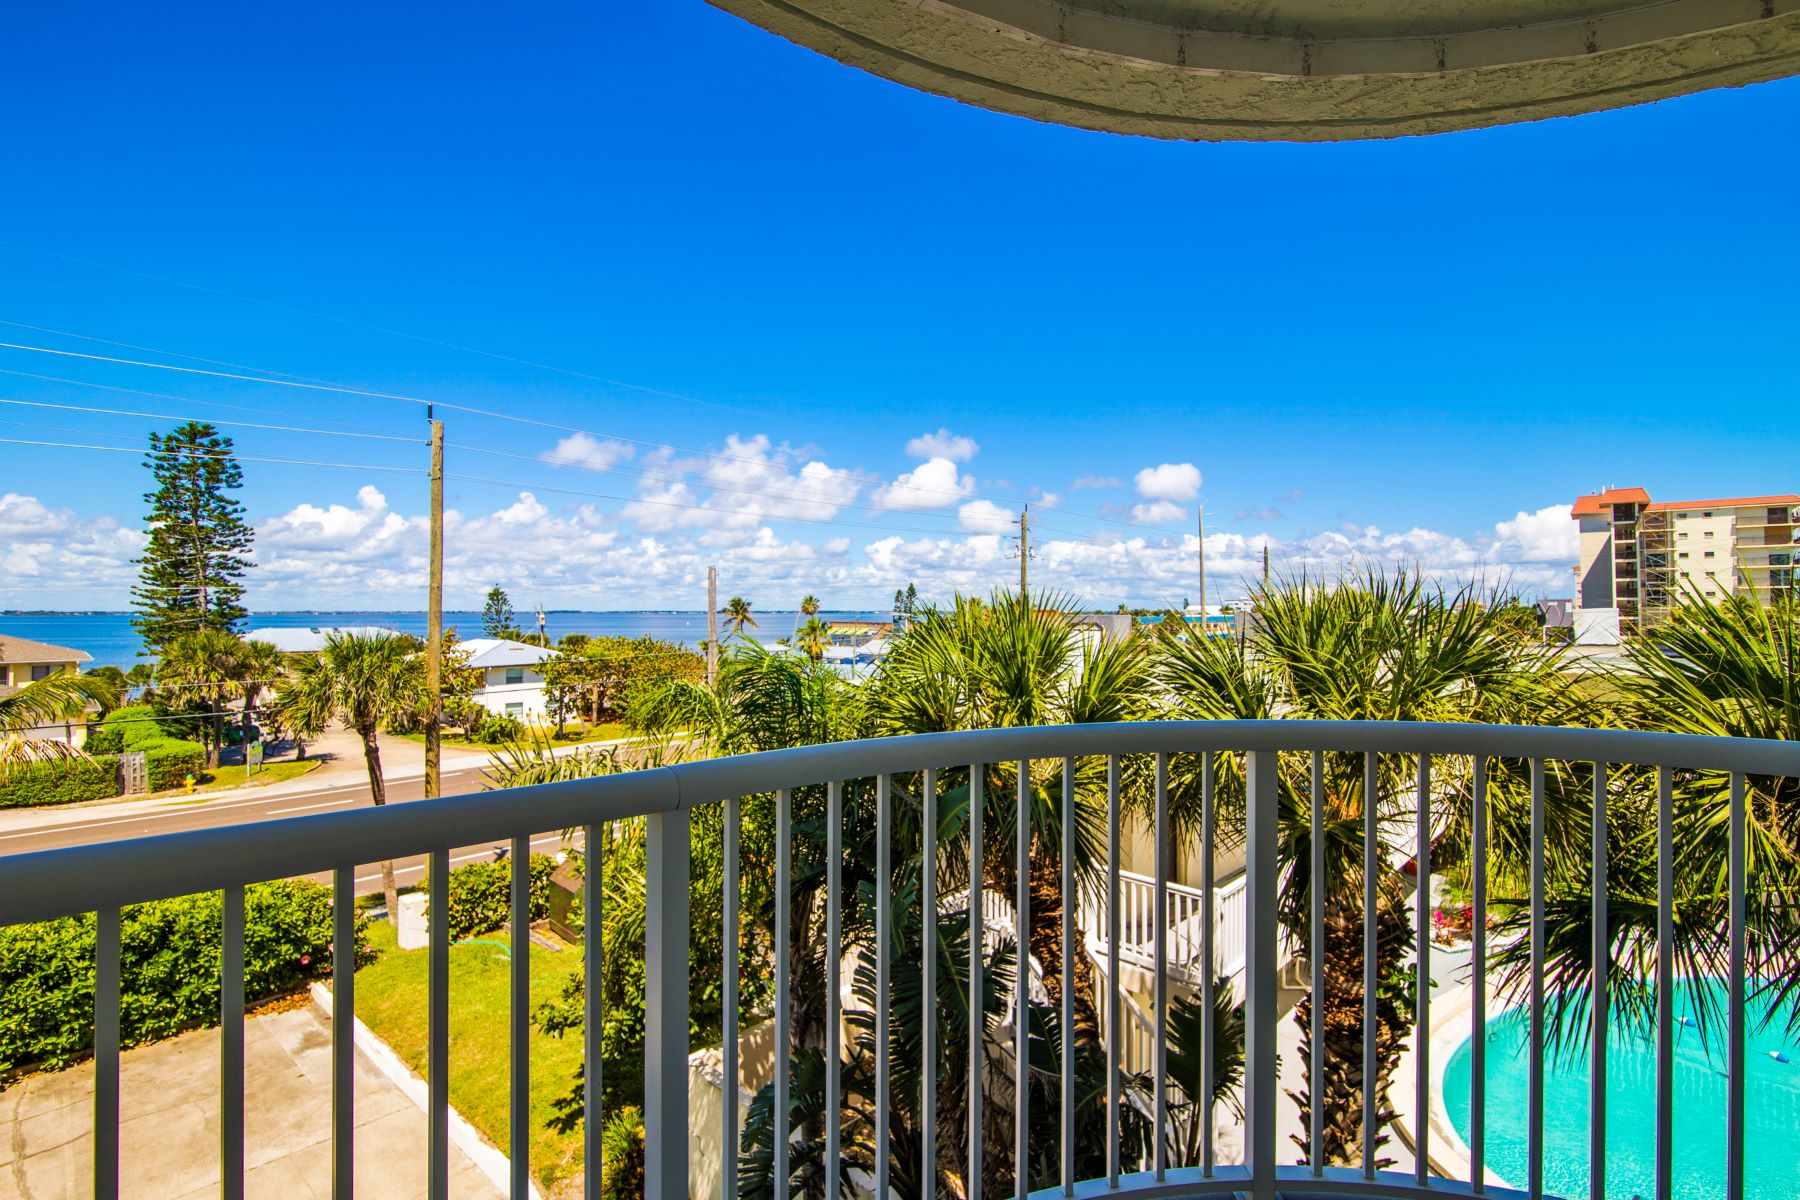 Condominiums for Sale at Casa Playa Condo 3031 S. Atlantic Avenue #201 Cocoa Beach, Florida 32931 United States